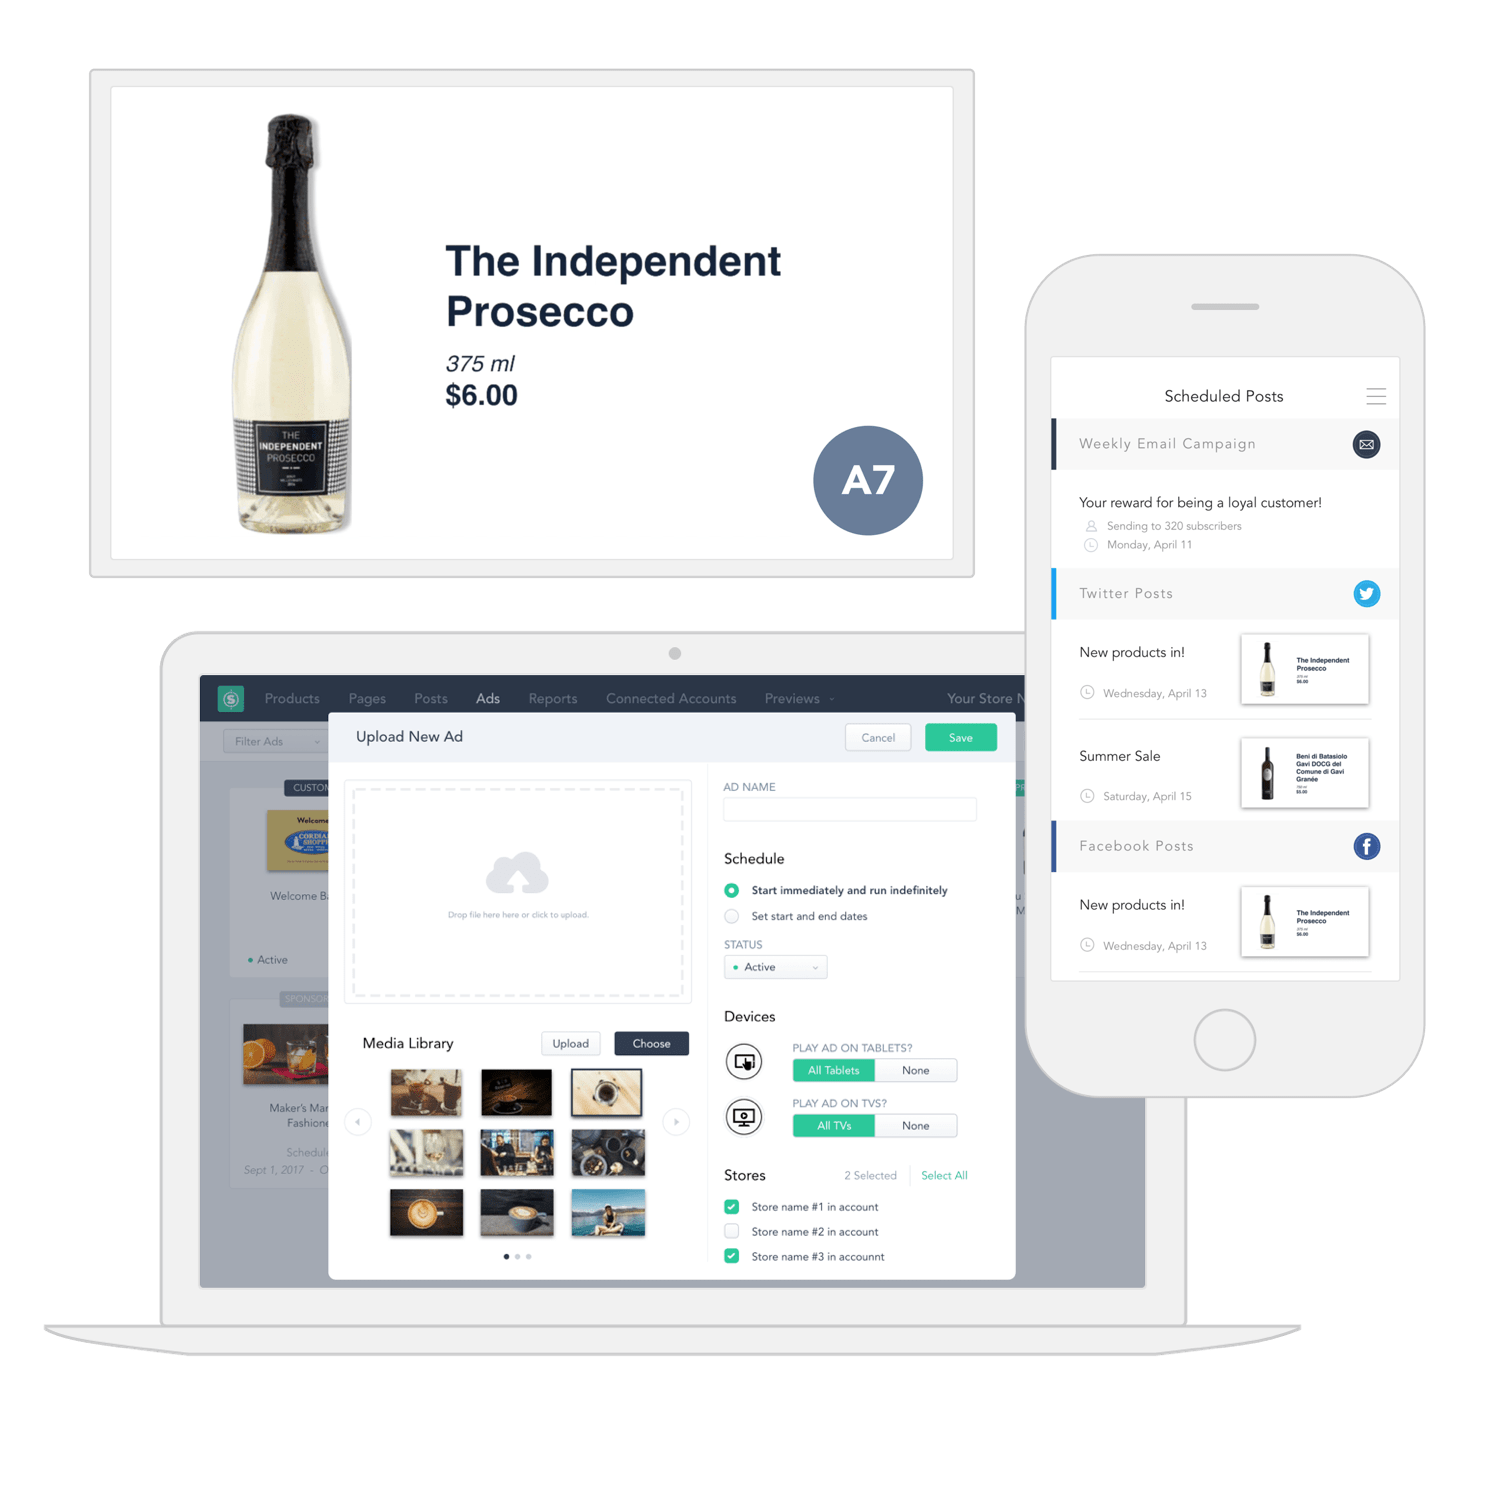 BevTv Ad - The Independent Prosecco.jpg